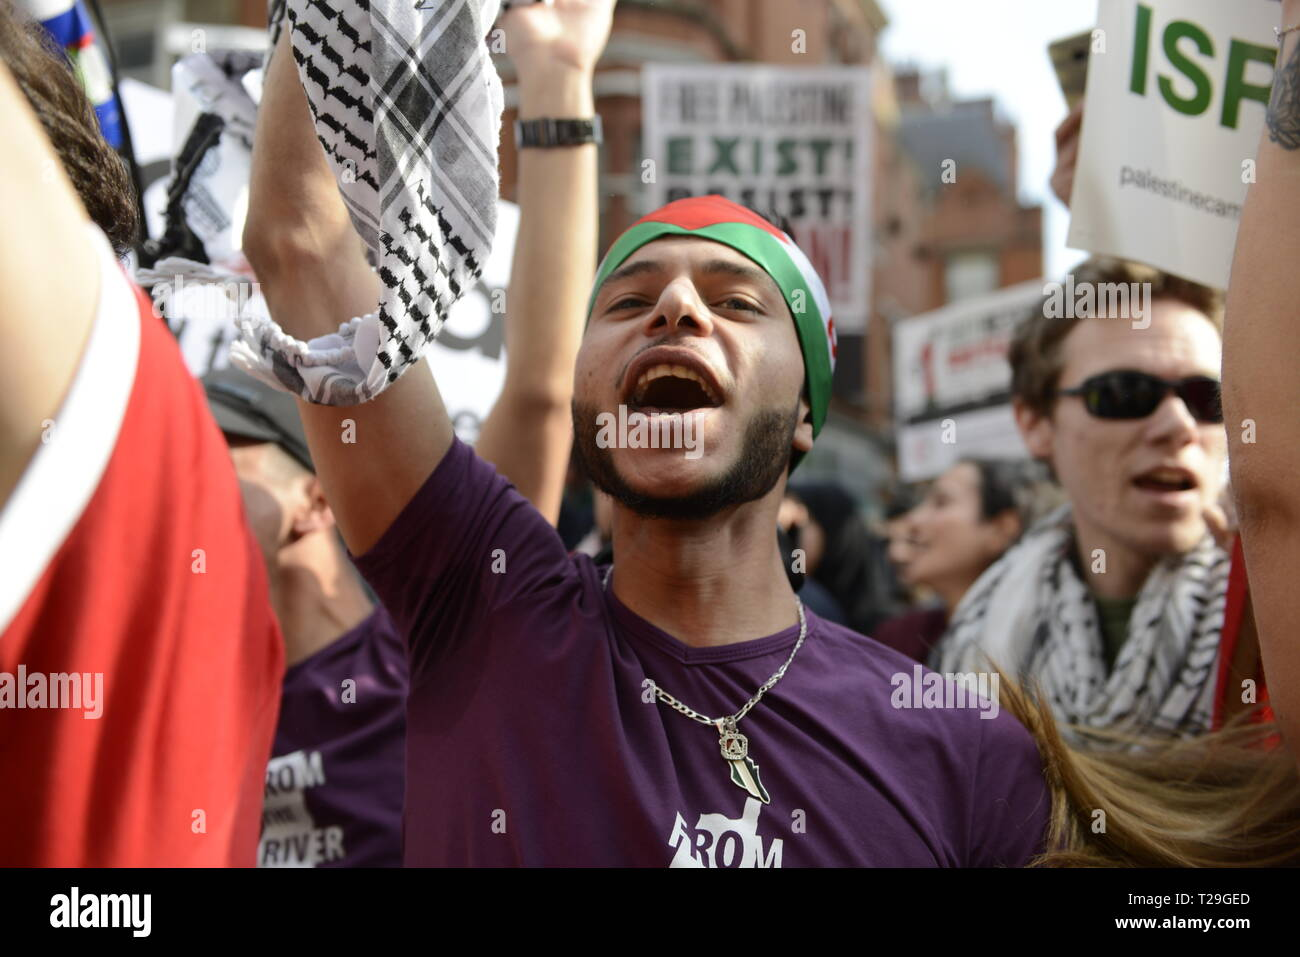 A protester is seen chanting slogans during the Exist, Resist, Return Rally for Palestine in London. People gather outside the Israeli embassy in London to demonstrate against the Israeli government, and to demand respect for Palestinians' fundamental rights to exist, resist and return. Palestinians are calling for global protests to support their right to come back to their villages. Rally was organized by Palestine Solidarity Campaign, Stop the War Coalition, Palestinian Forum in Britain, Friends of Al- Aqsa, and Muslim Association of Britain. - Stock Image